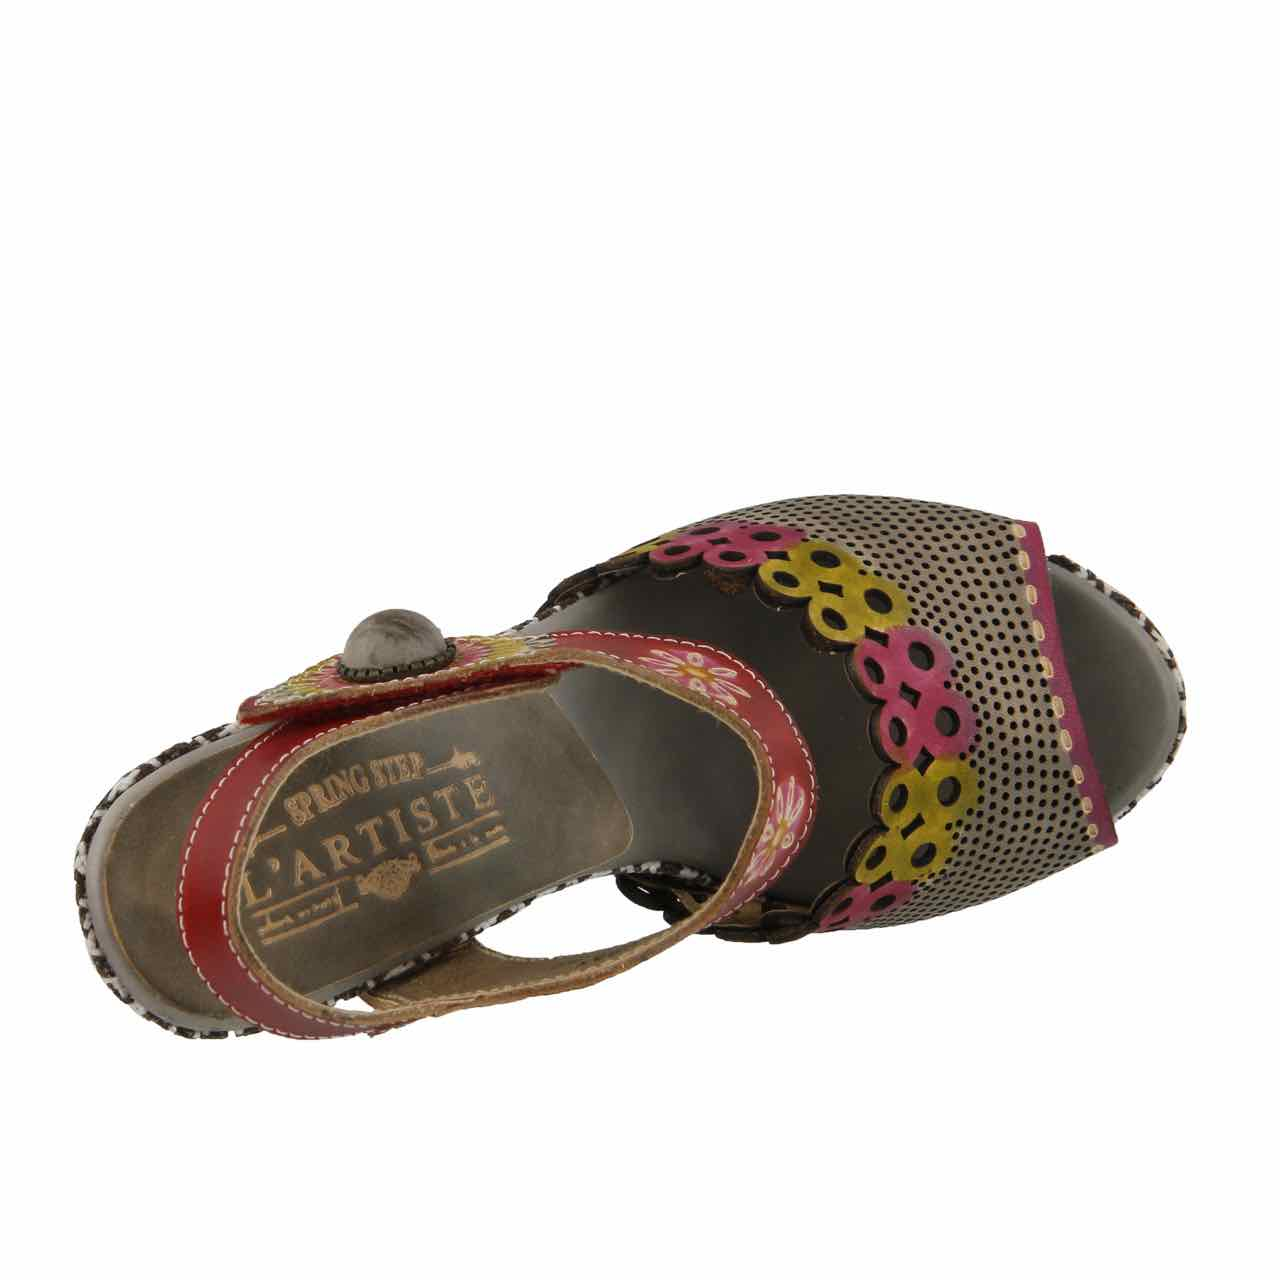 L Artiste By Spring Step Sandals Jive Grey Canada Buy